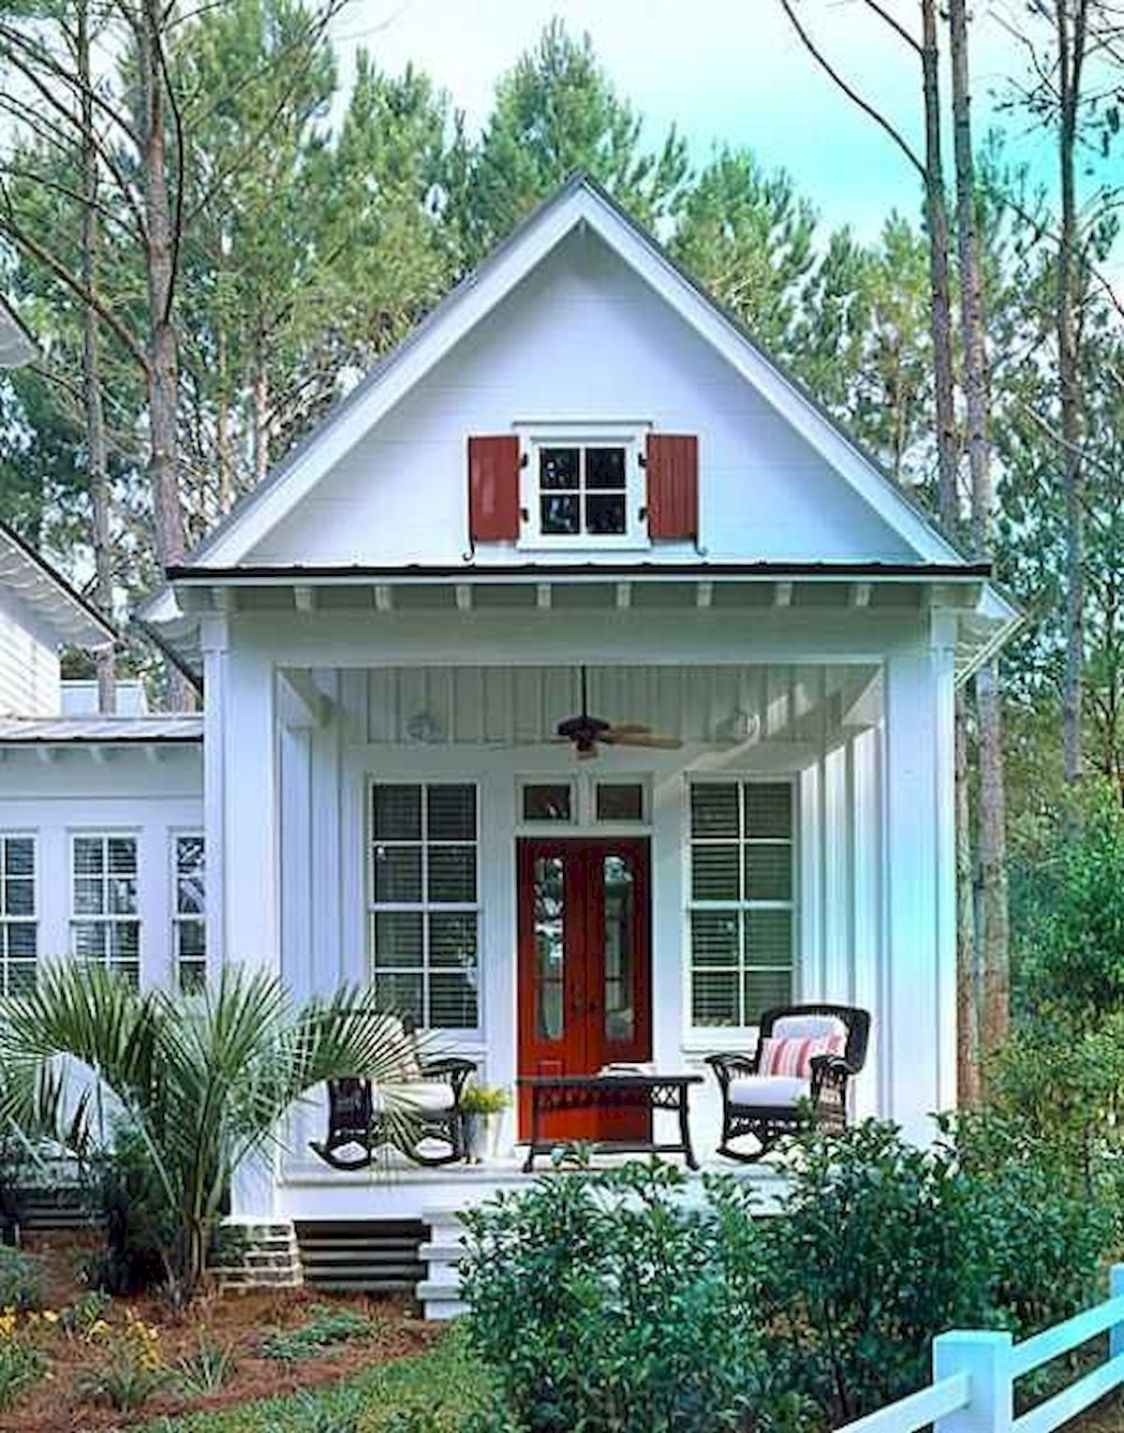 58 Best Tiny House Plans Small Cottages | Small cottage ... Country Living Houseplans on country living bath and shower, country living painting, country living magazine, country school house plans, country house plans with porches, country style house plans, french country house plans, country living kitchens, country living rooms, country ranch house plans, english country house plans, country living paint by number, country living tile, country cottage house plans, country living toys, wood country house plans, country southern house plans, low country house plans, country living photography, small country house plans,